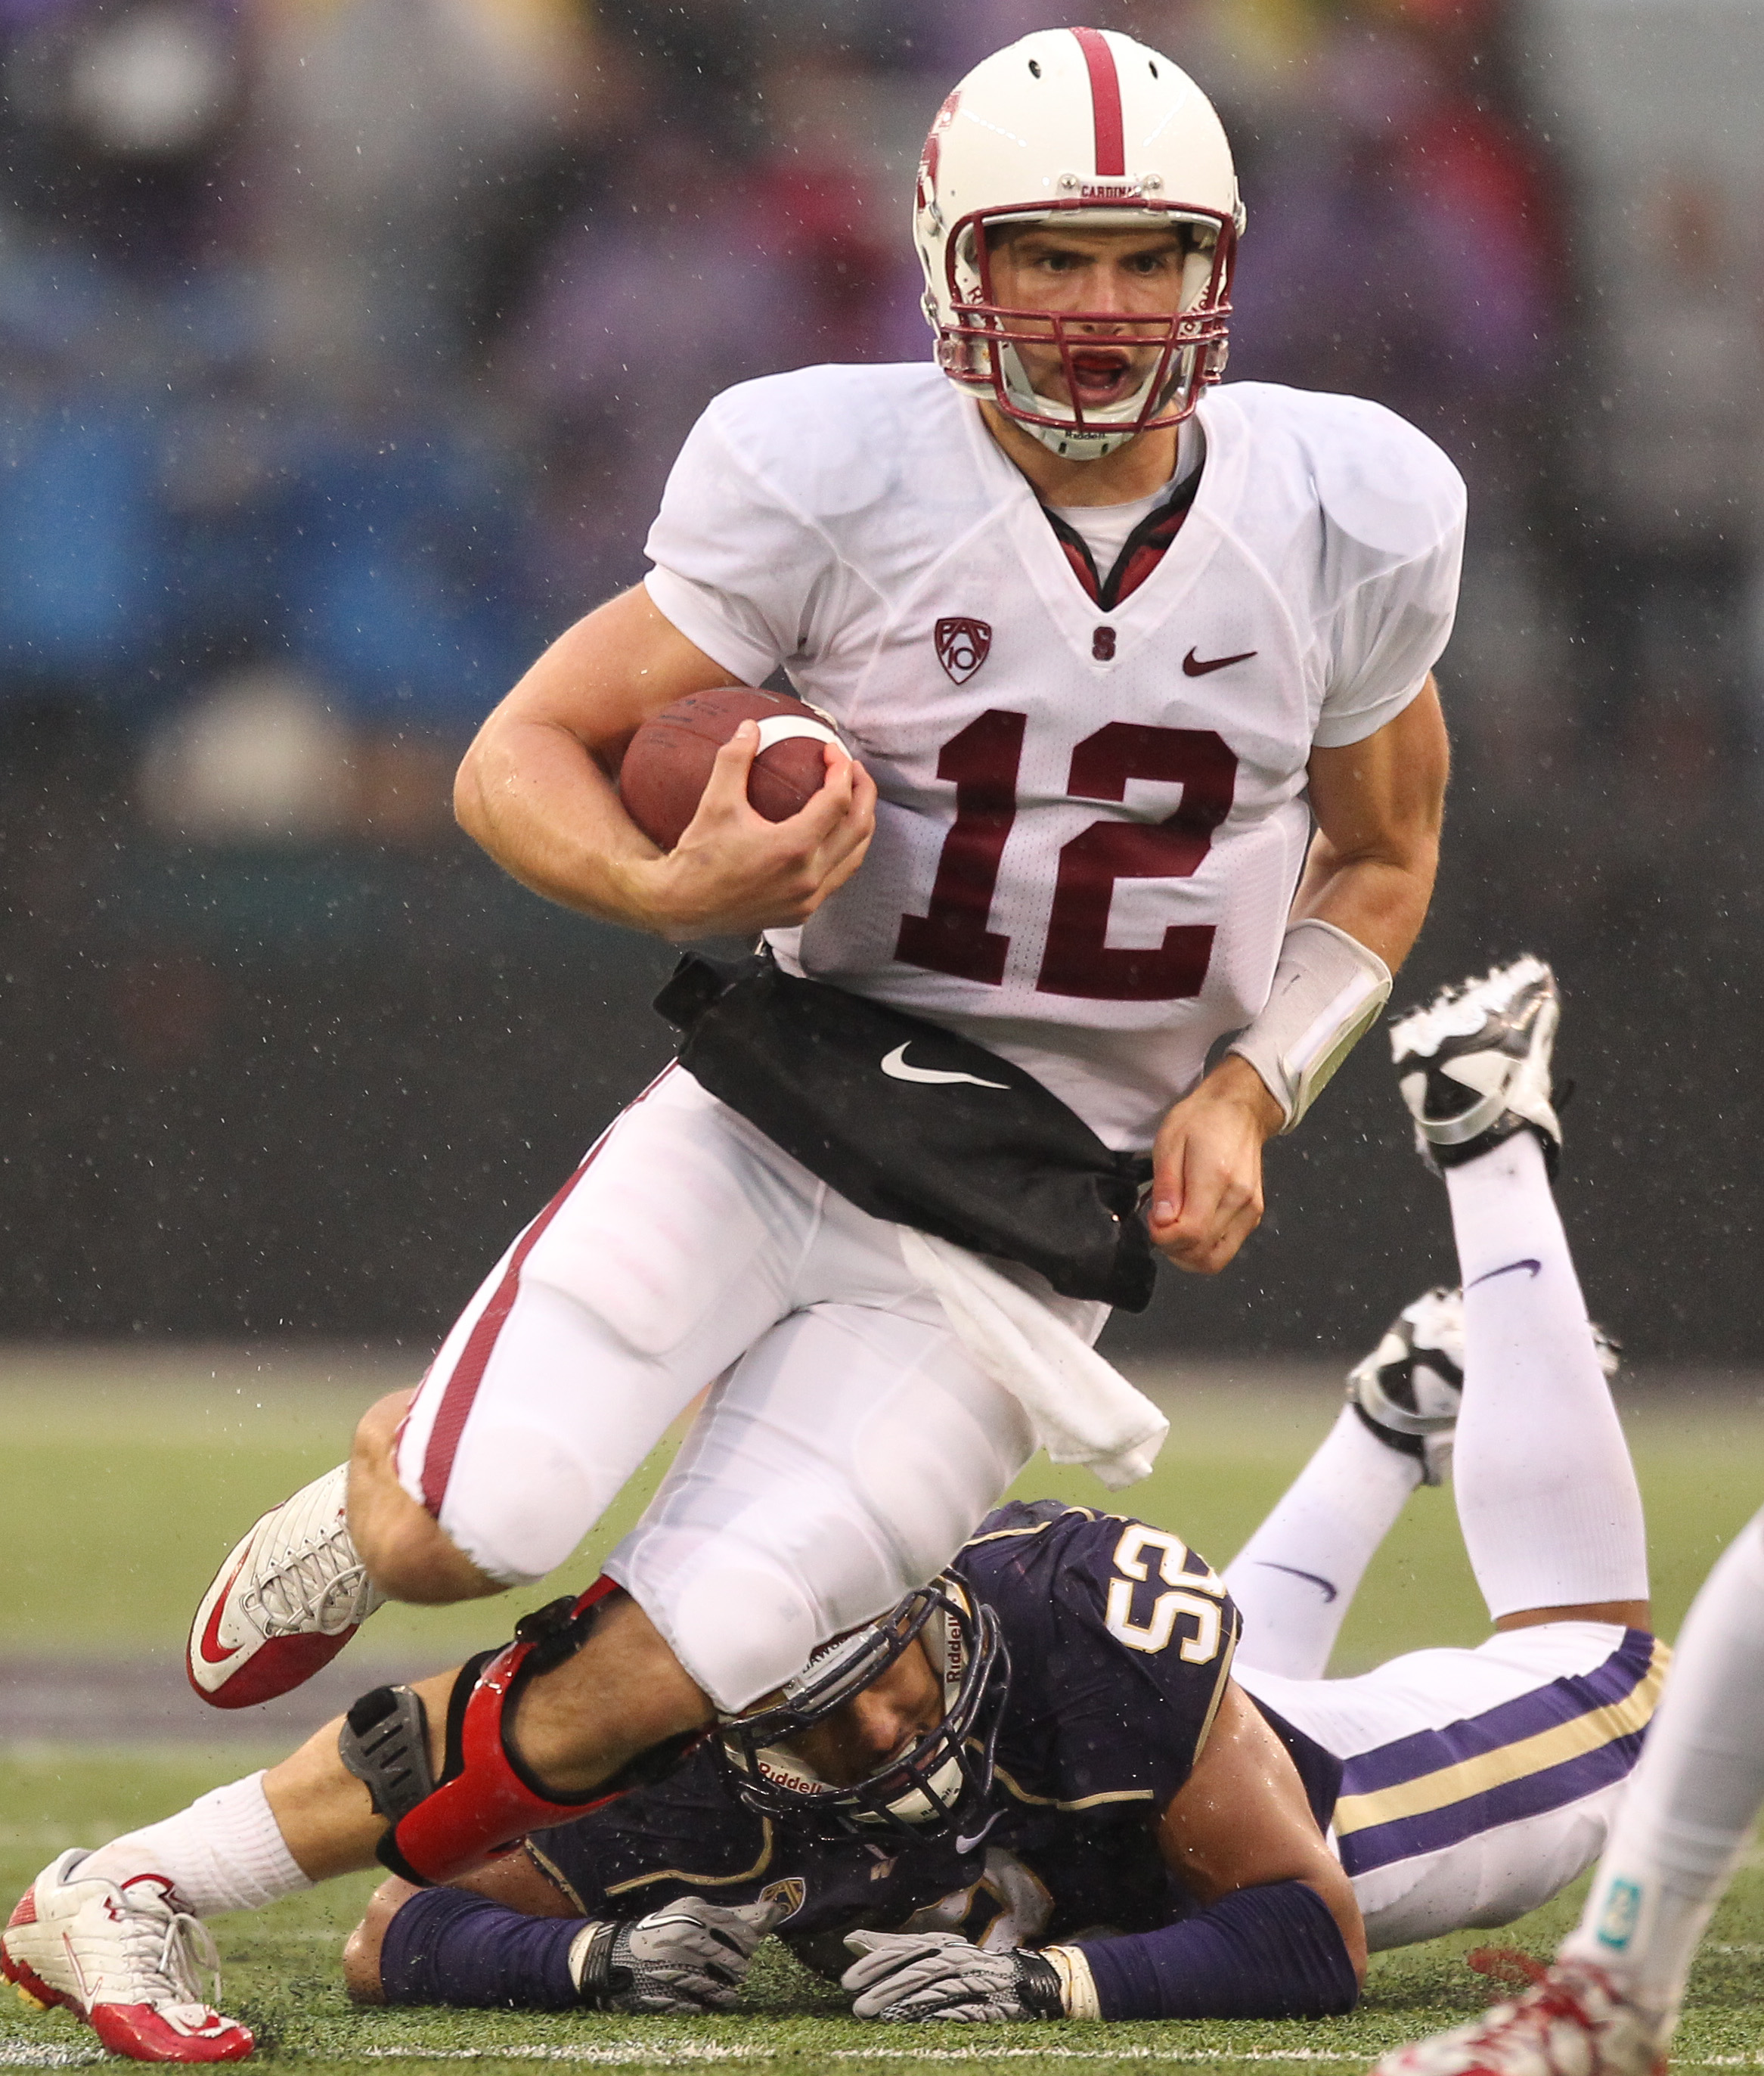 f0e5145f778 SEATTLE - OCTOBER 30  Quarterback Andrew Luck  12 of the Stanford Cardinal  rushes against